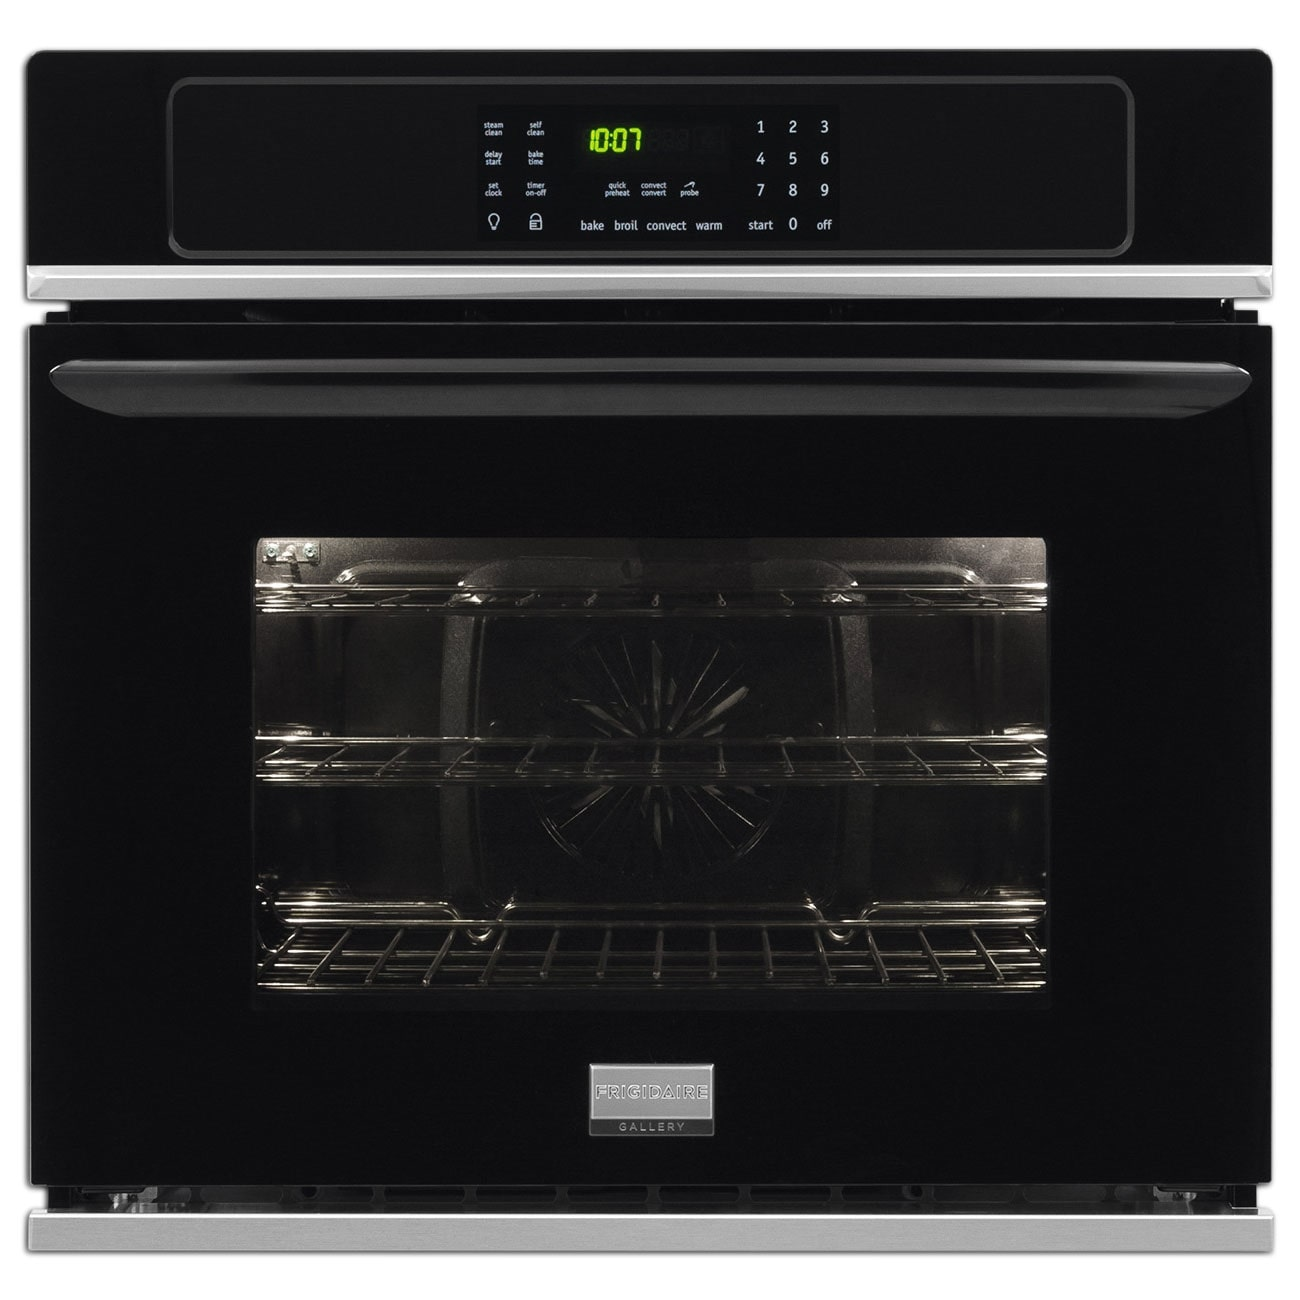 Frigidaire Gallery Black Convection Wall Oven (4.6 Cu. Ft.) - FGEW3065PB